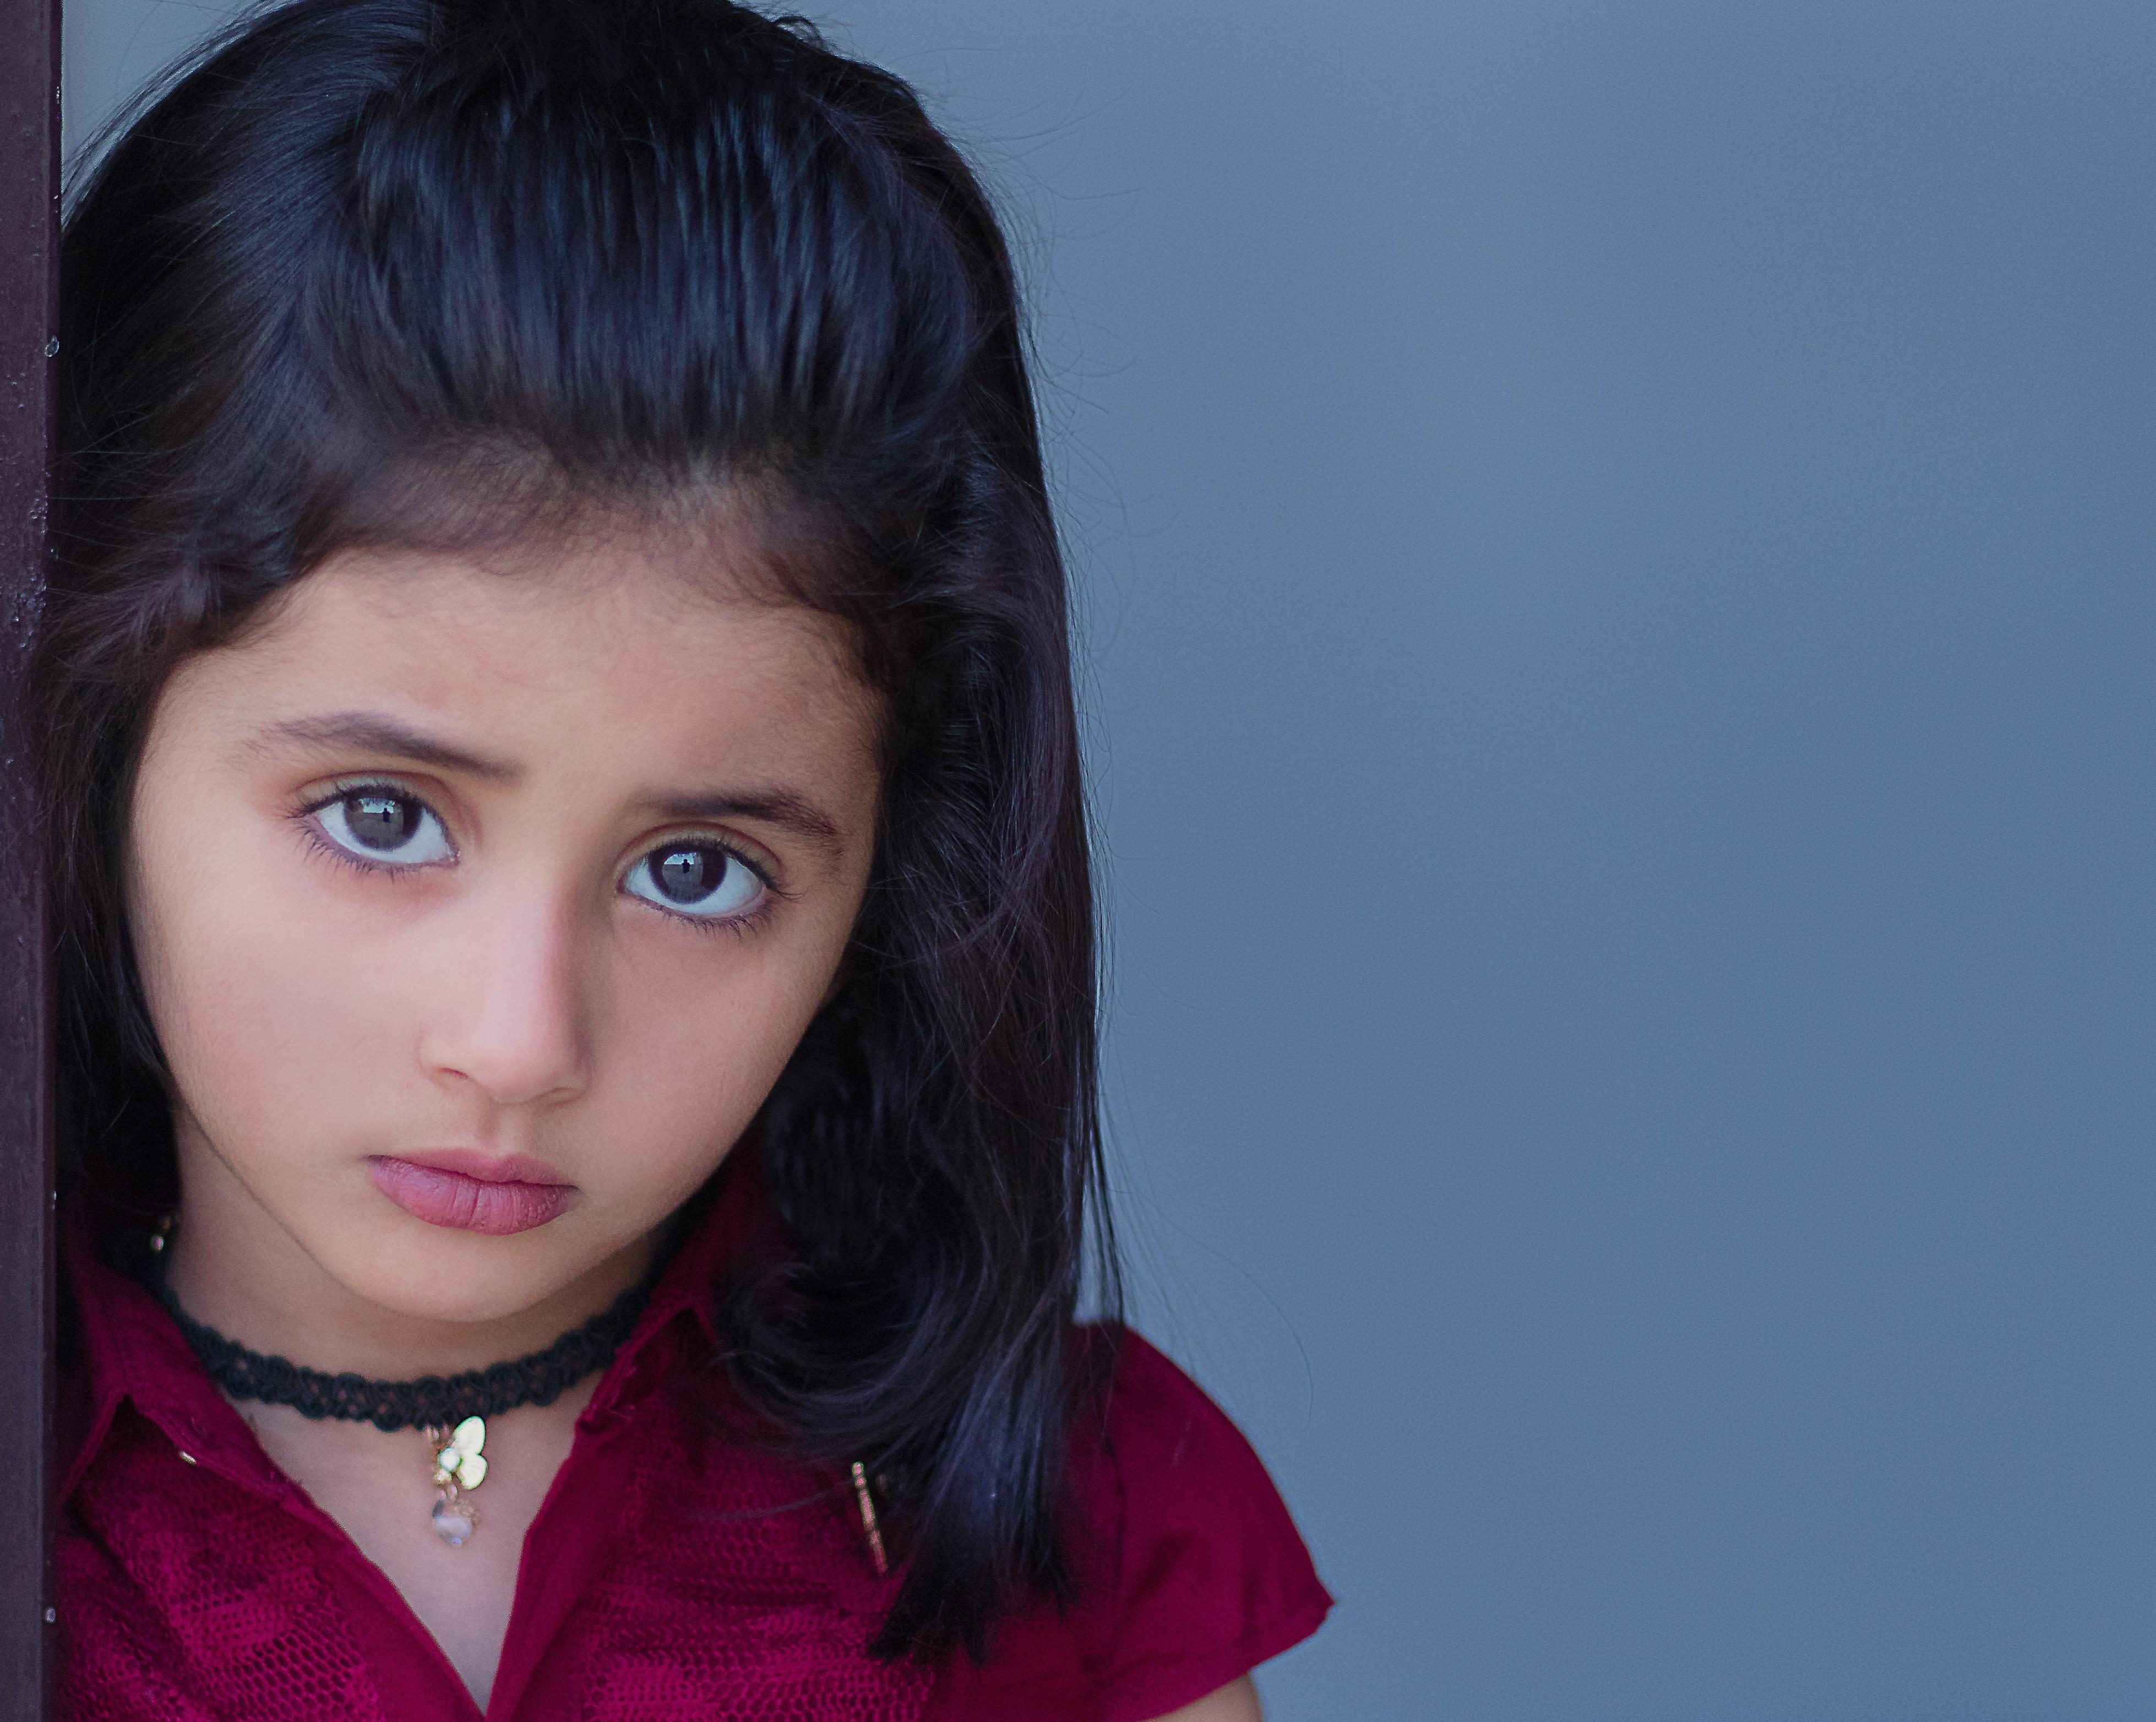 Free Picture Child Eye Girl People Cute Glamour